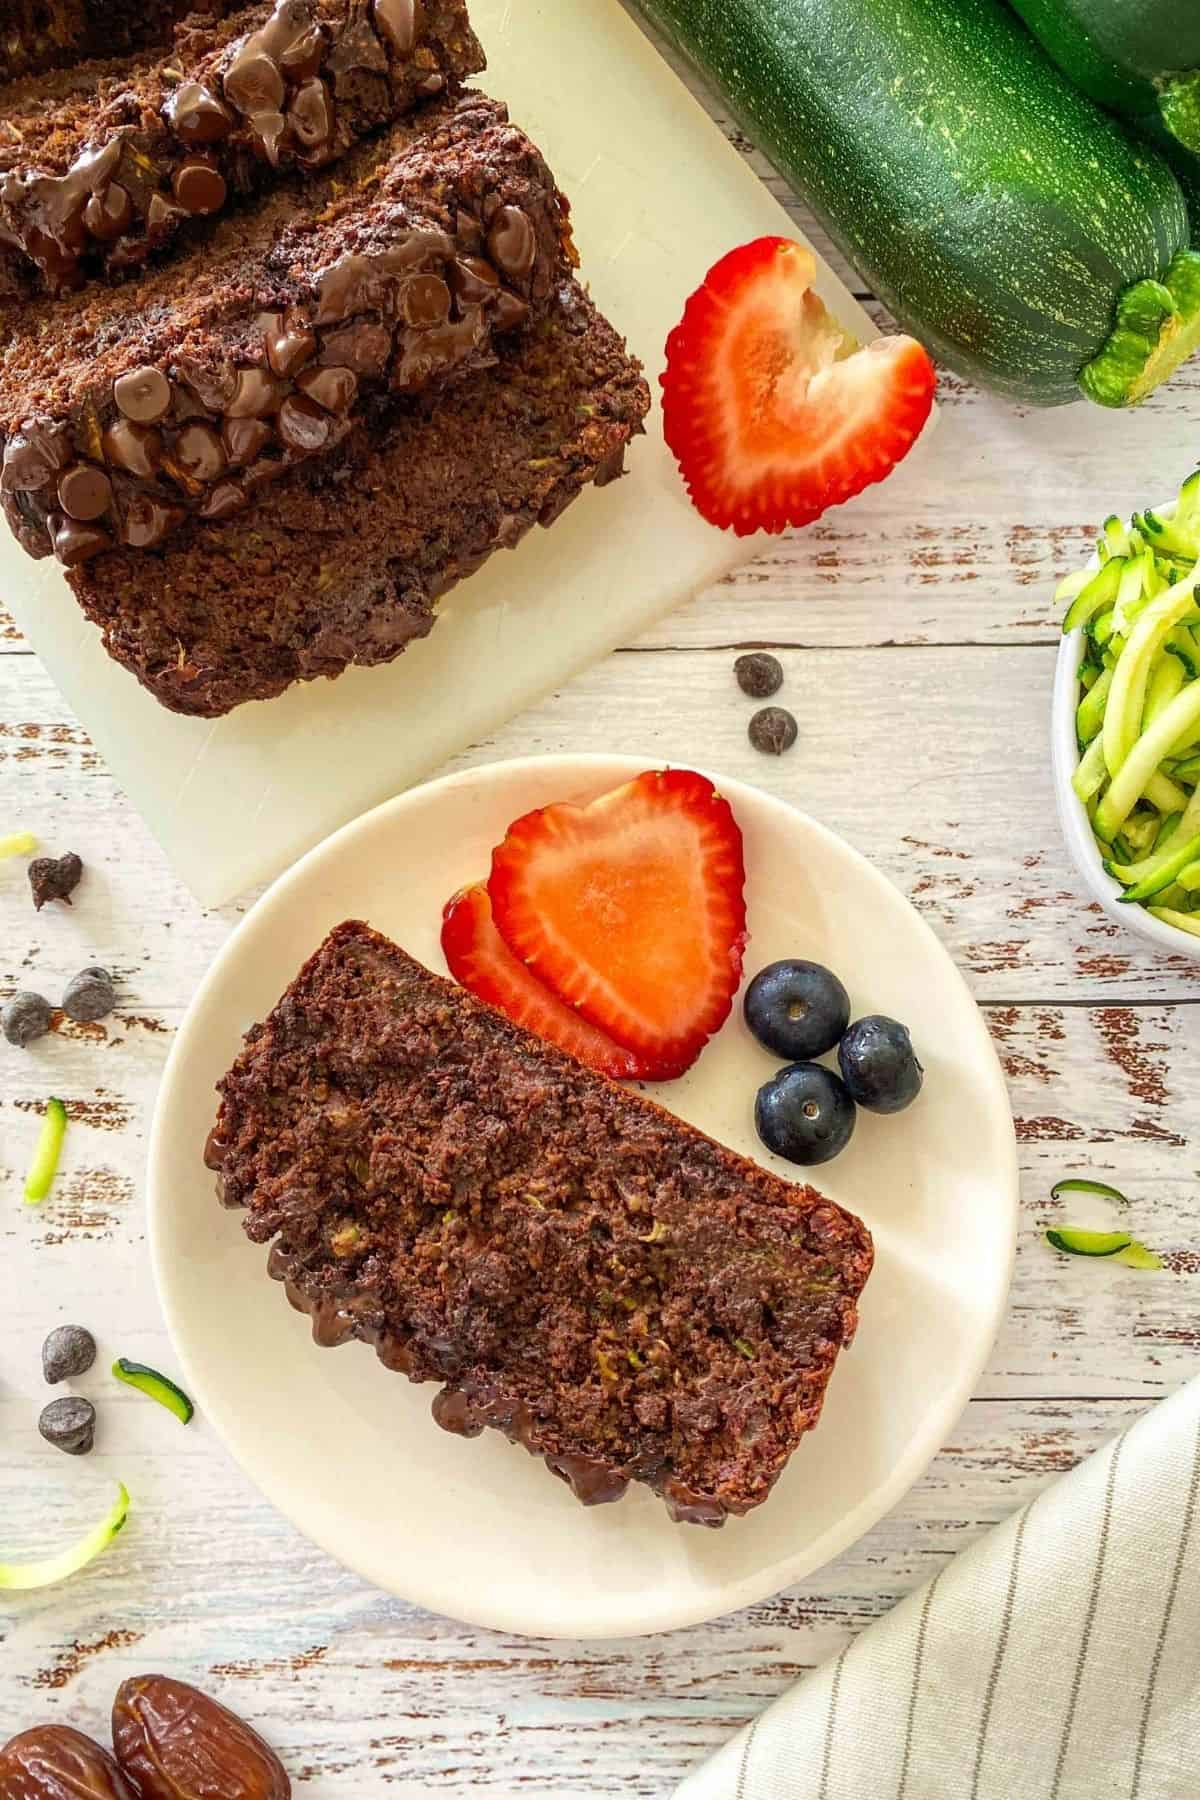 Sliced chocolate zucchini bread on cutting board with one slice on plate with strawberries and blueberries.